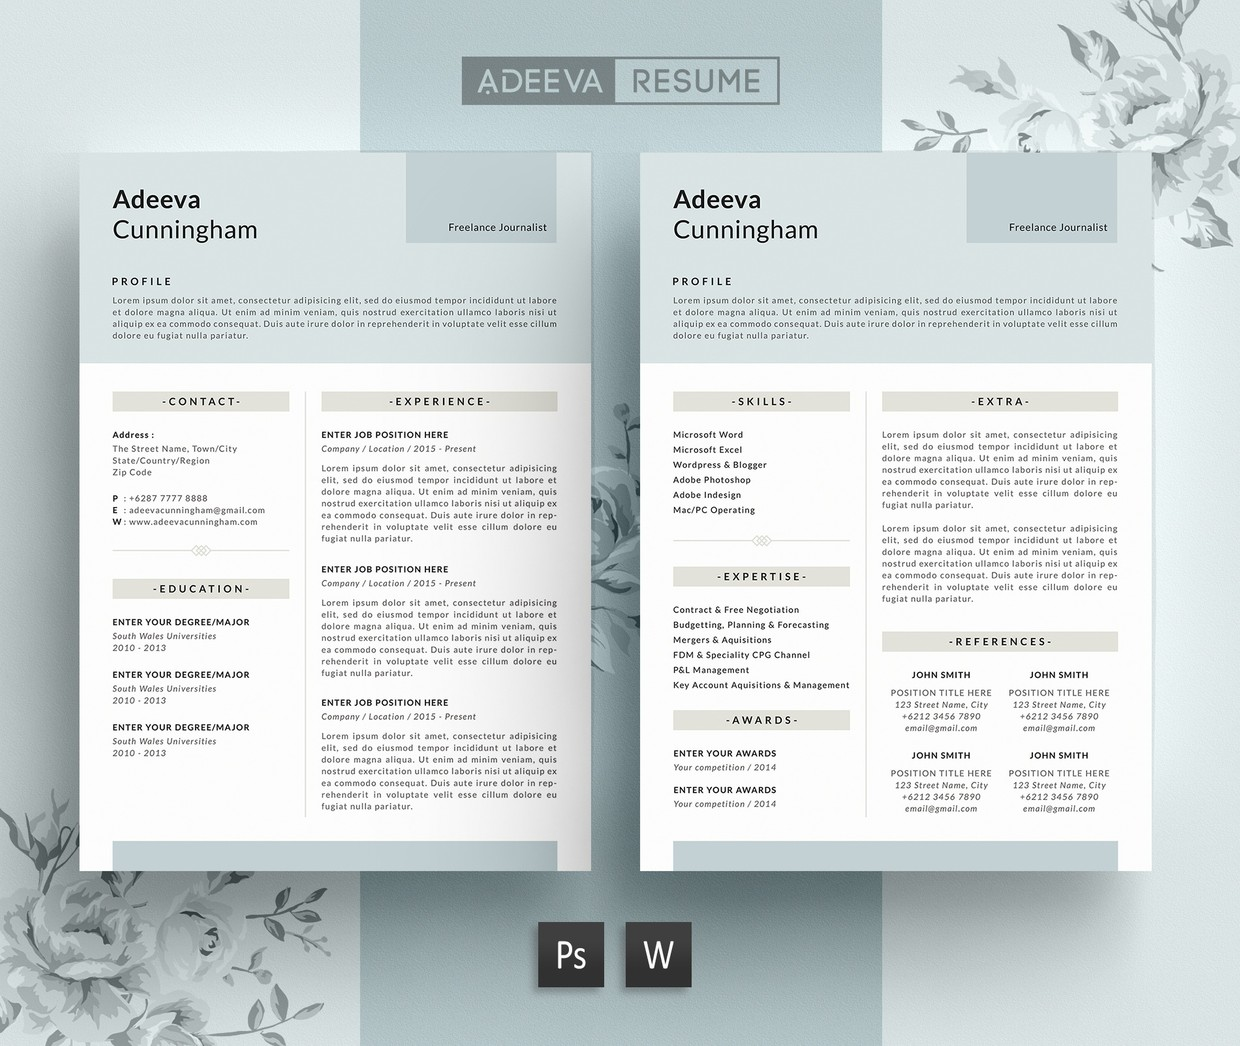 Simple Resume Template / CV Template | Adeeva Cunningham